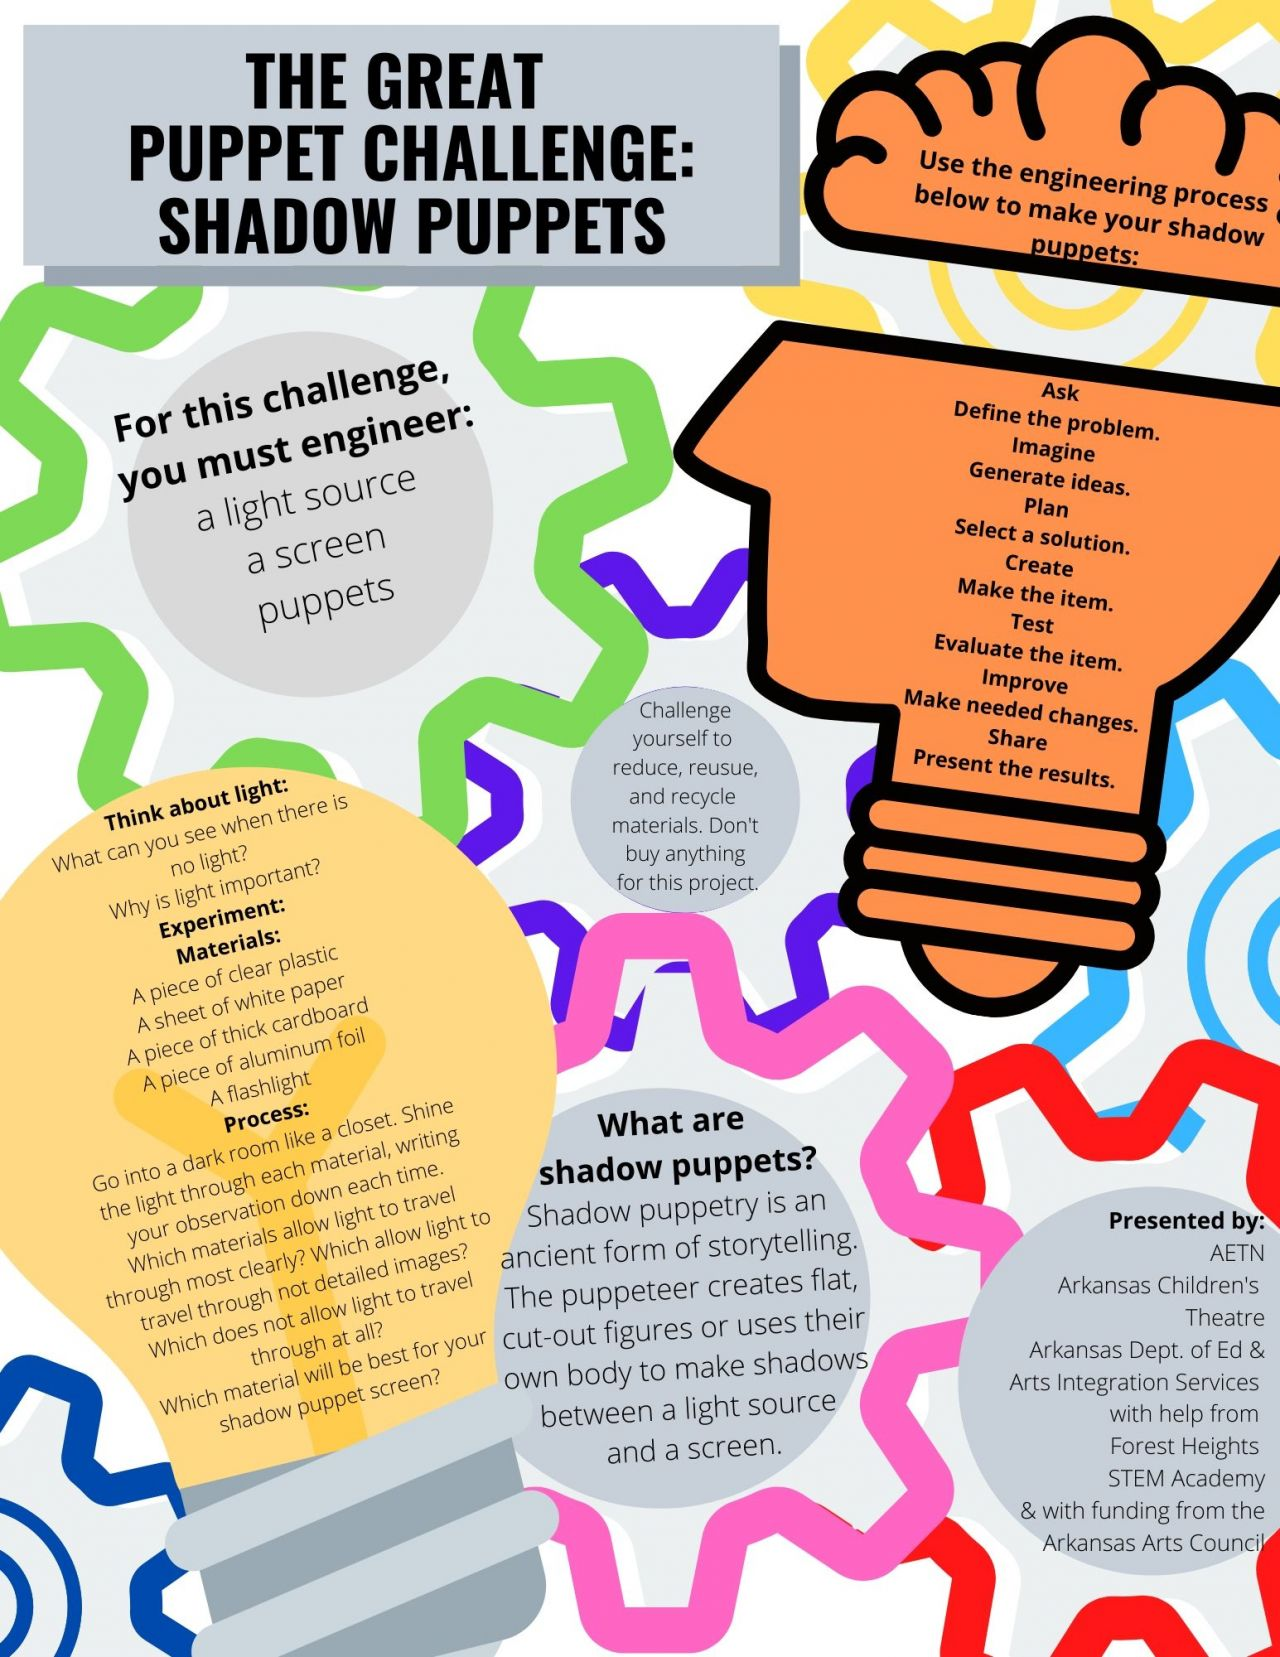 The Great Puppet Challenge Curriculum One-Sheet